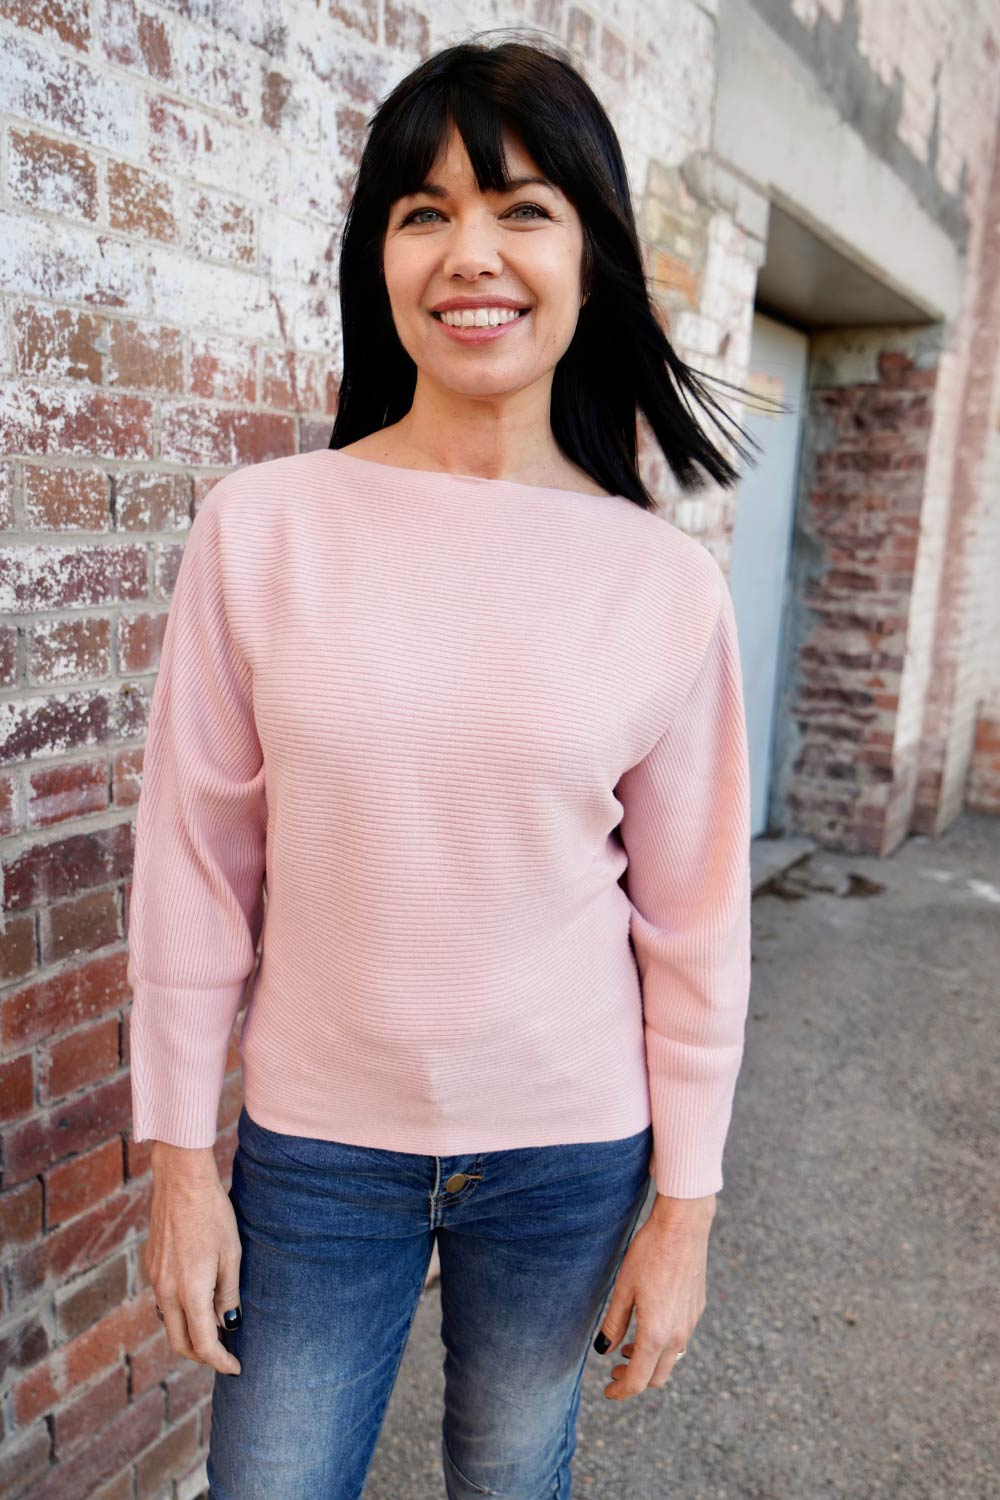 Victoria Jumper - Light Pink - Kabana Shop